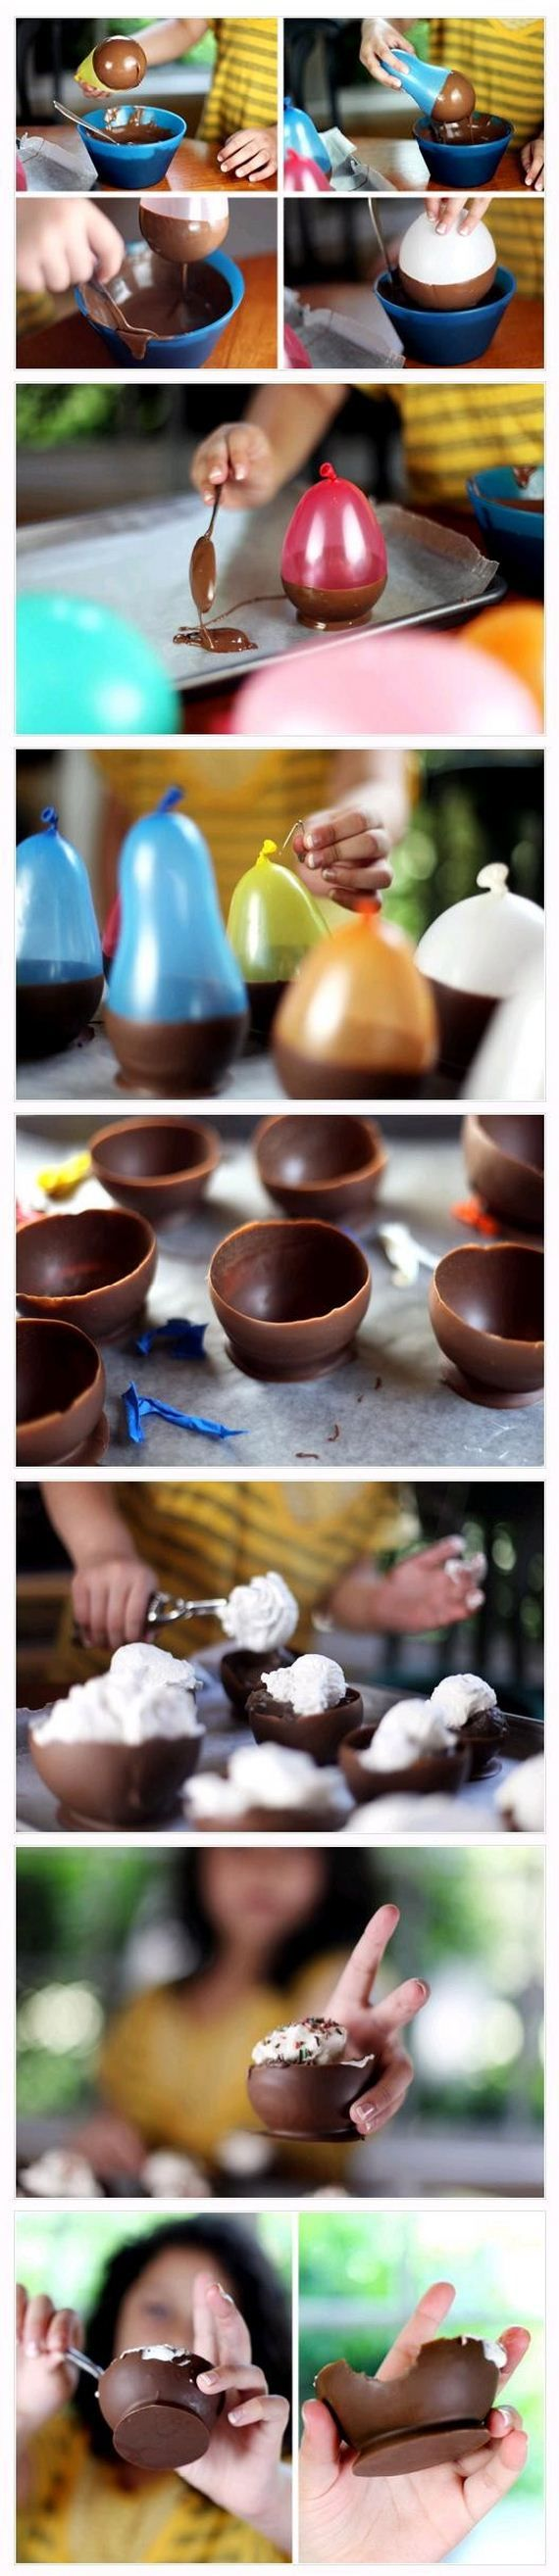 DIY chocolate cups for desserts! ♥polar express party